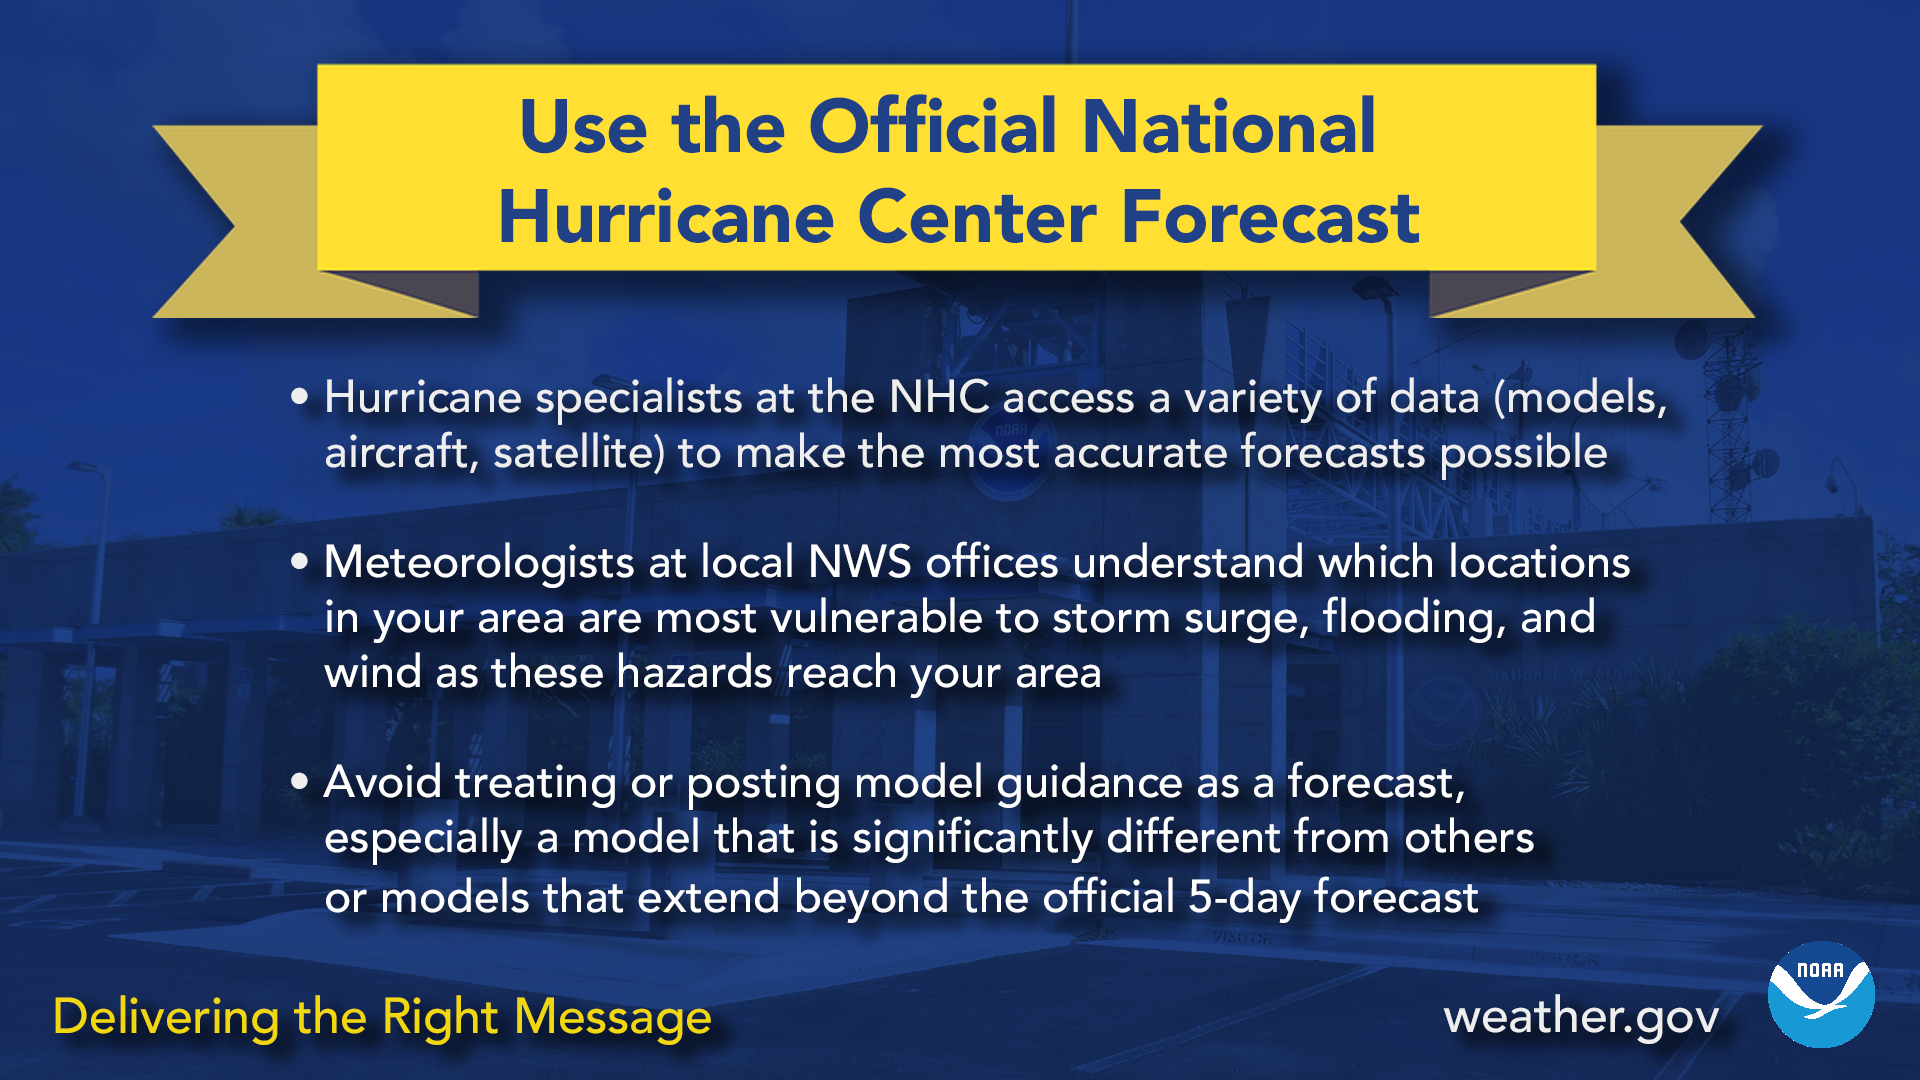 Use the official National Hurricane Center forecast